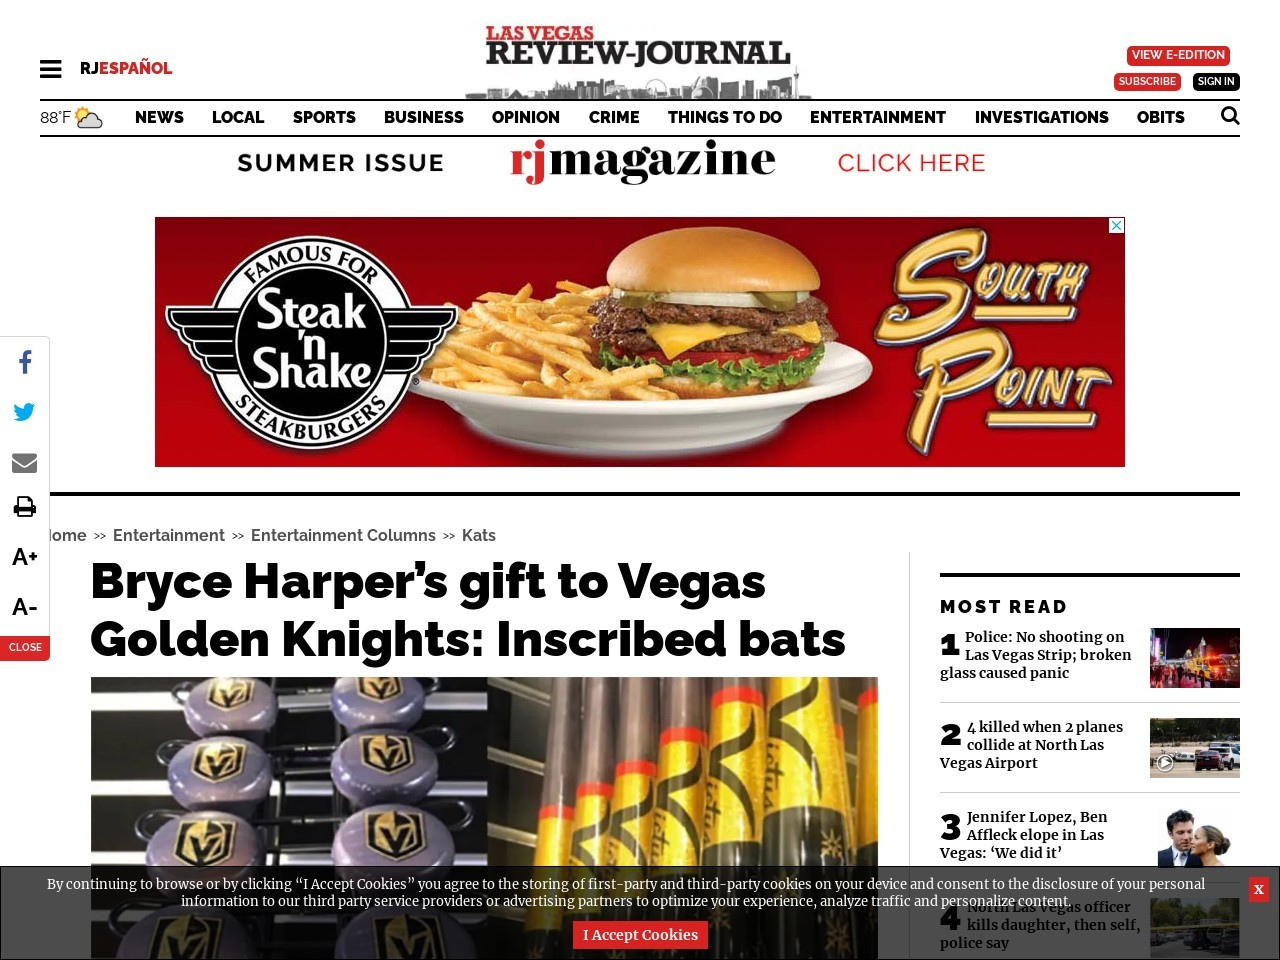 Bryce Harper's gift to Vegas Golden Knights: Inscribed bats